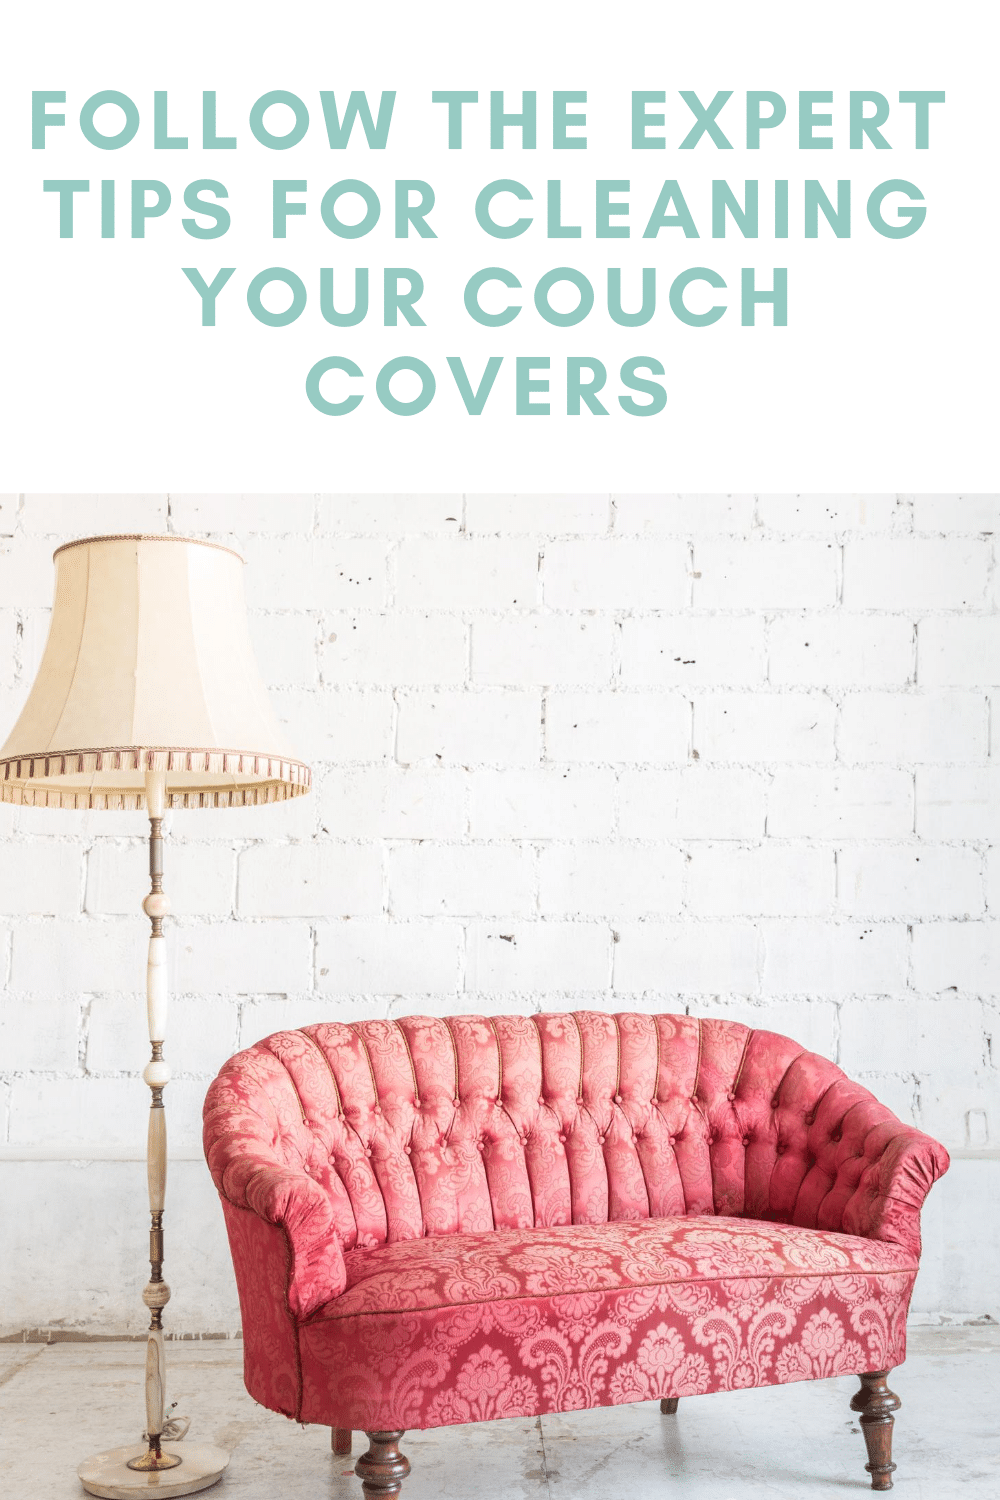 Follow The Expert Tips For Cleaning Your Couch Covers